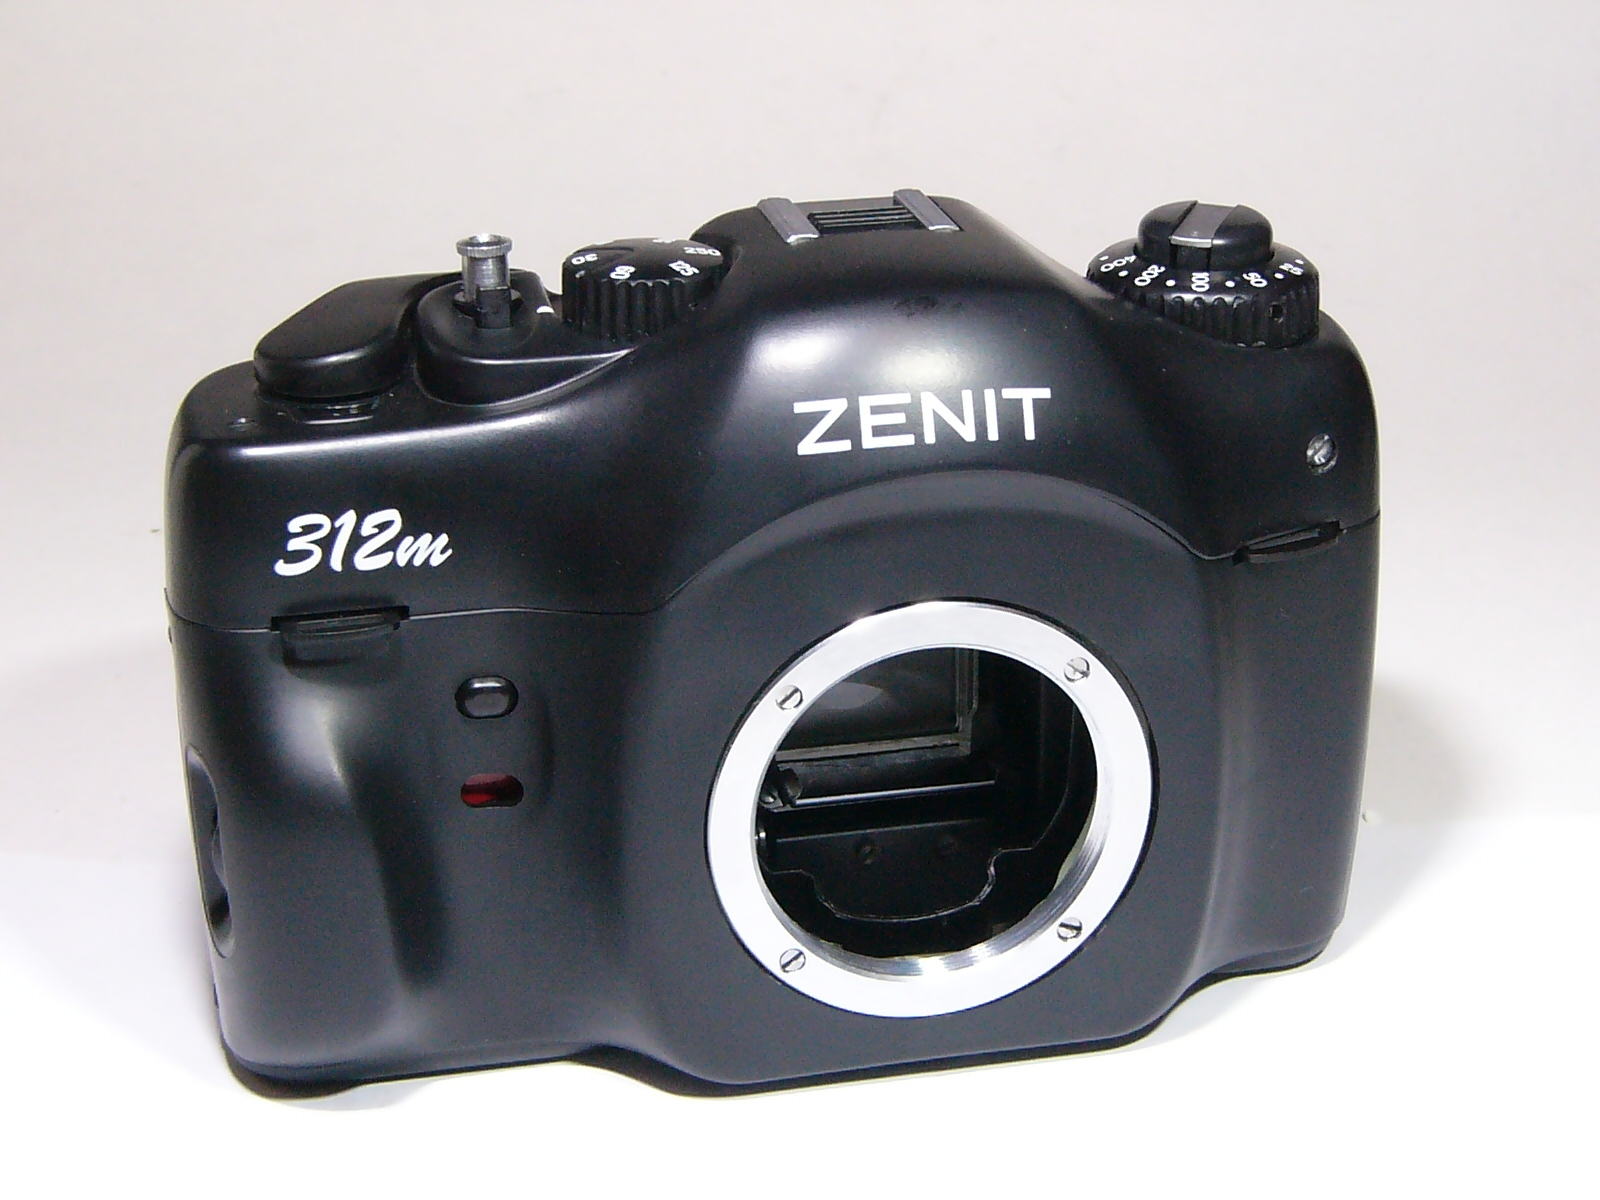 Zenit: Zenit 312M 35mm SLR Mechanical Film Camera. Body Only